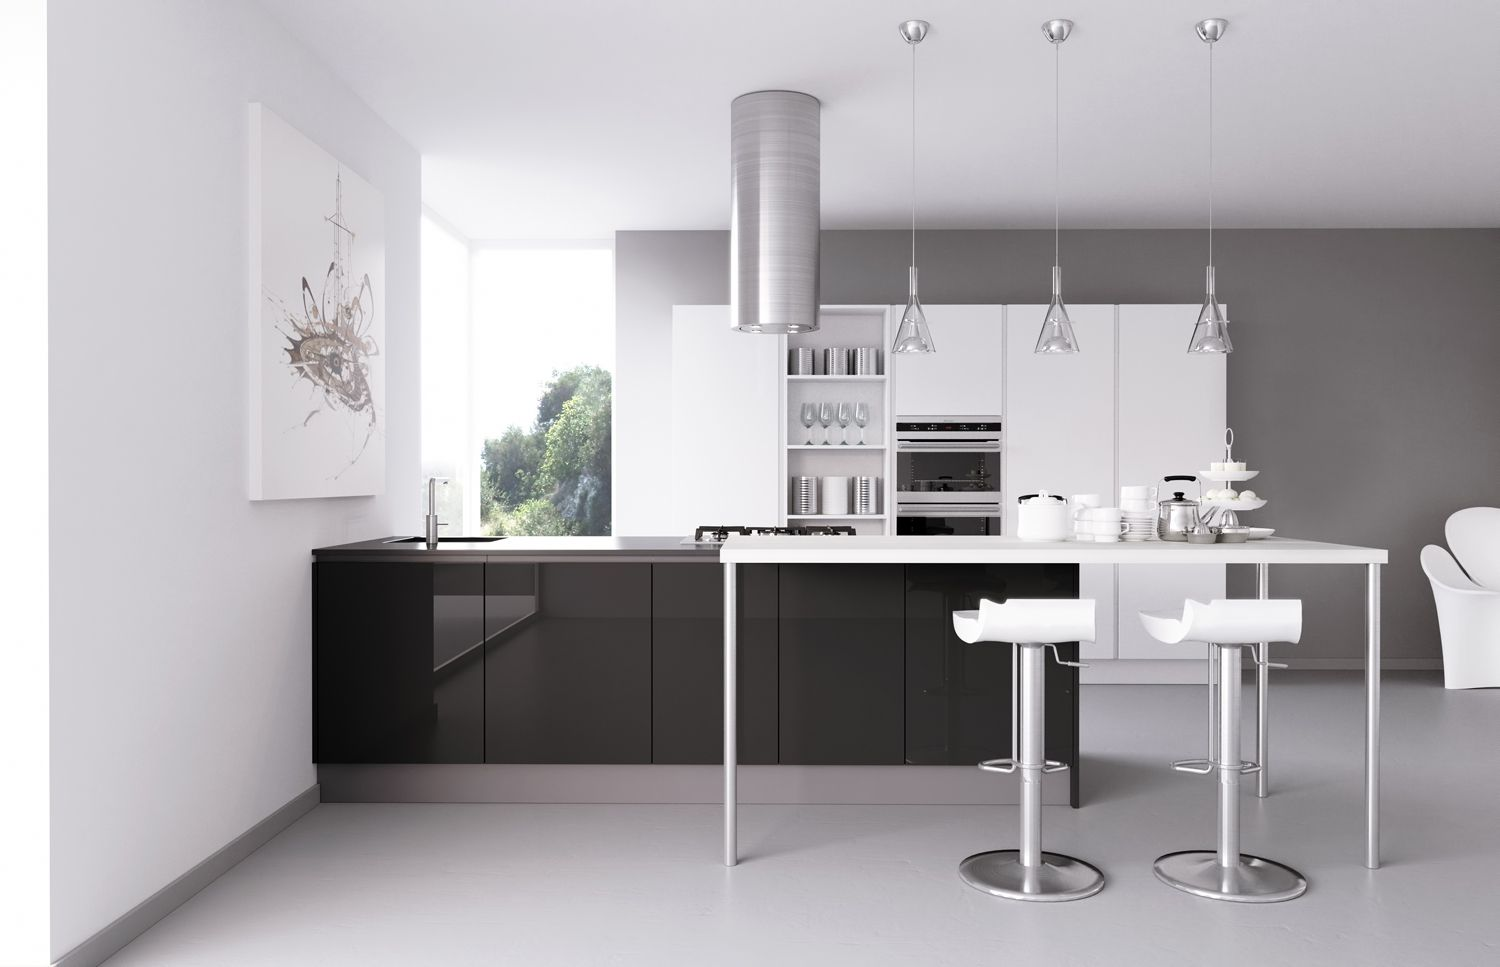 Beautiful cucine moderne prezzi pictures ideas design for Cucine moderne economiche prezzi